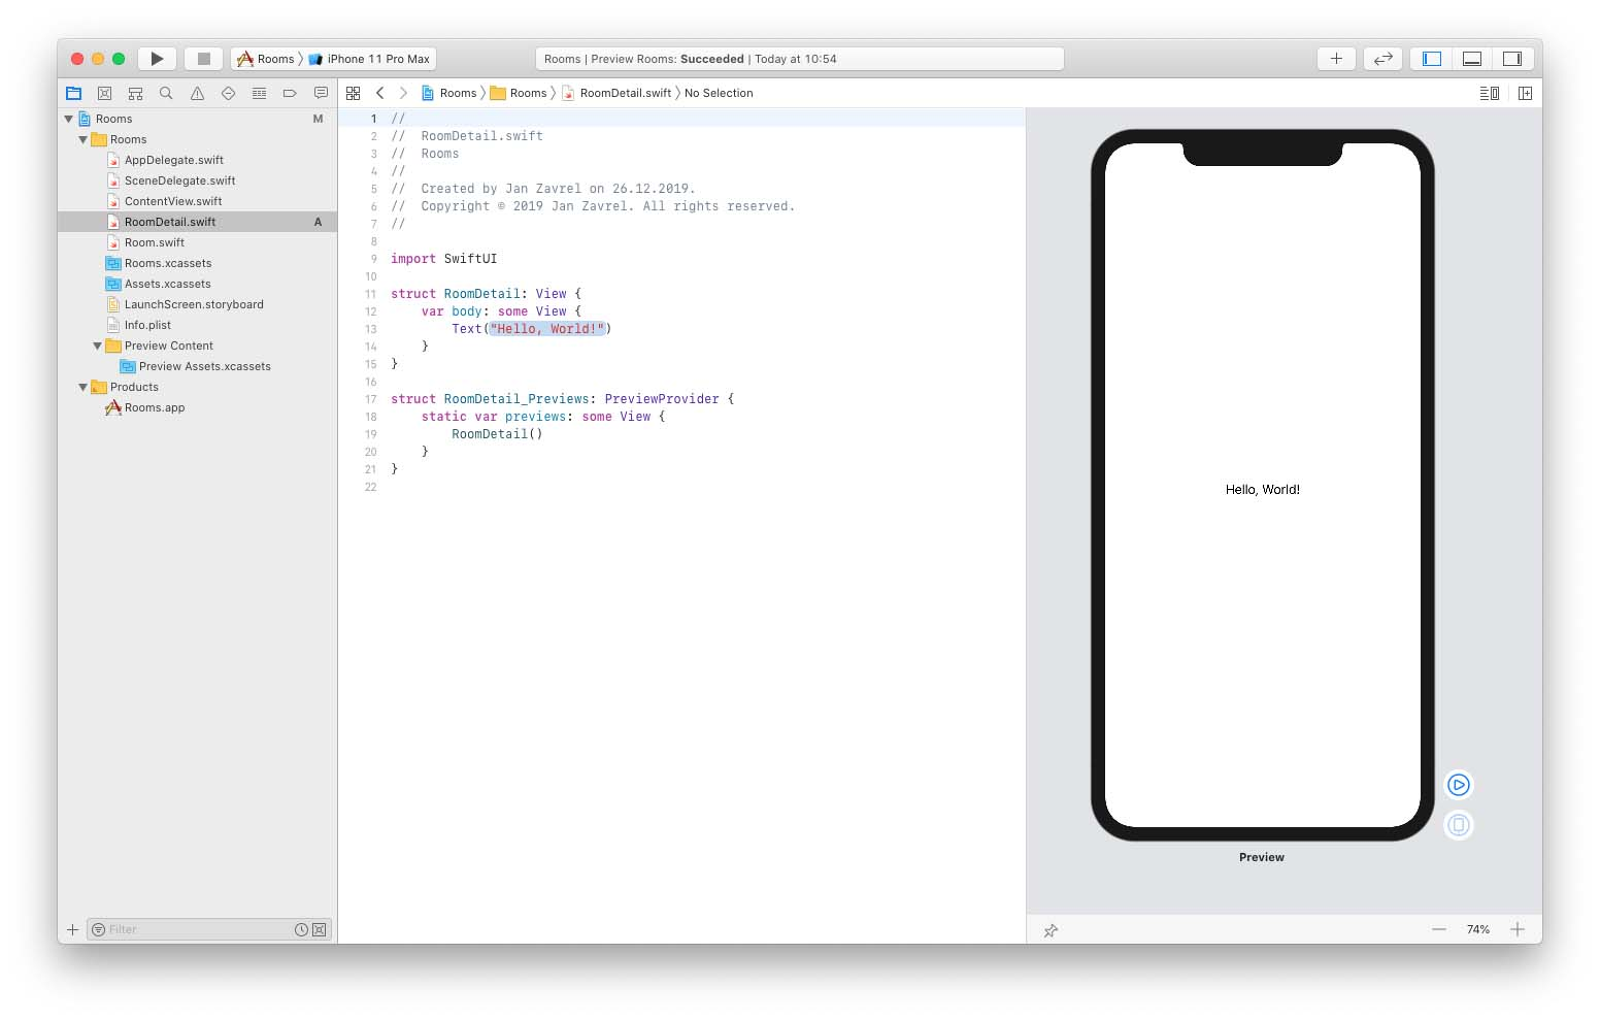 https://res.cloudinary.com/codewithjan/image/upload/v1578453639/swiftui-by-examples/swiftui-by-examples-37.jpg